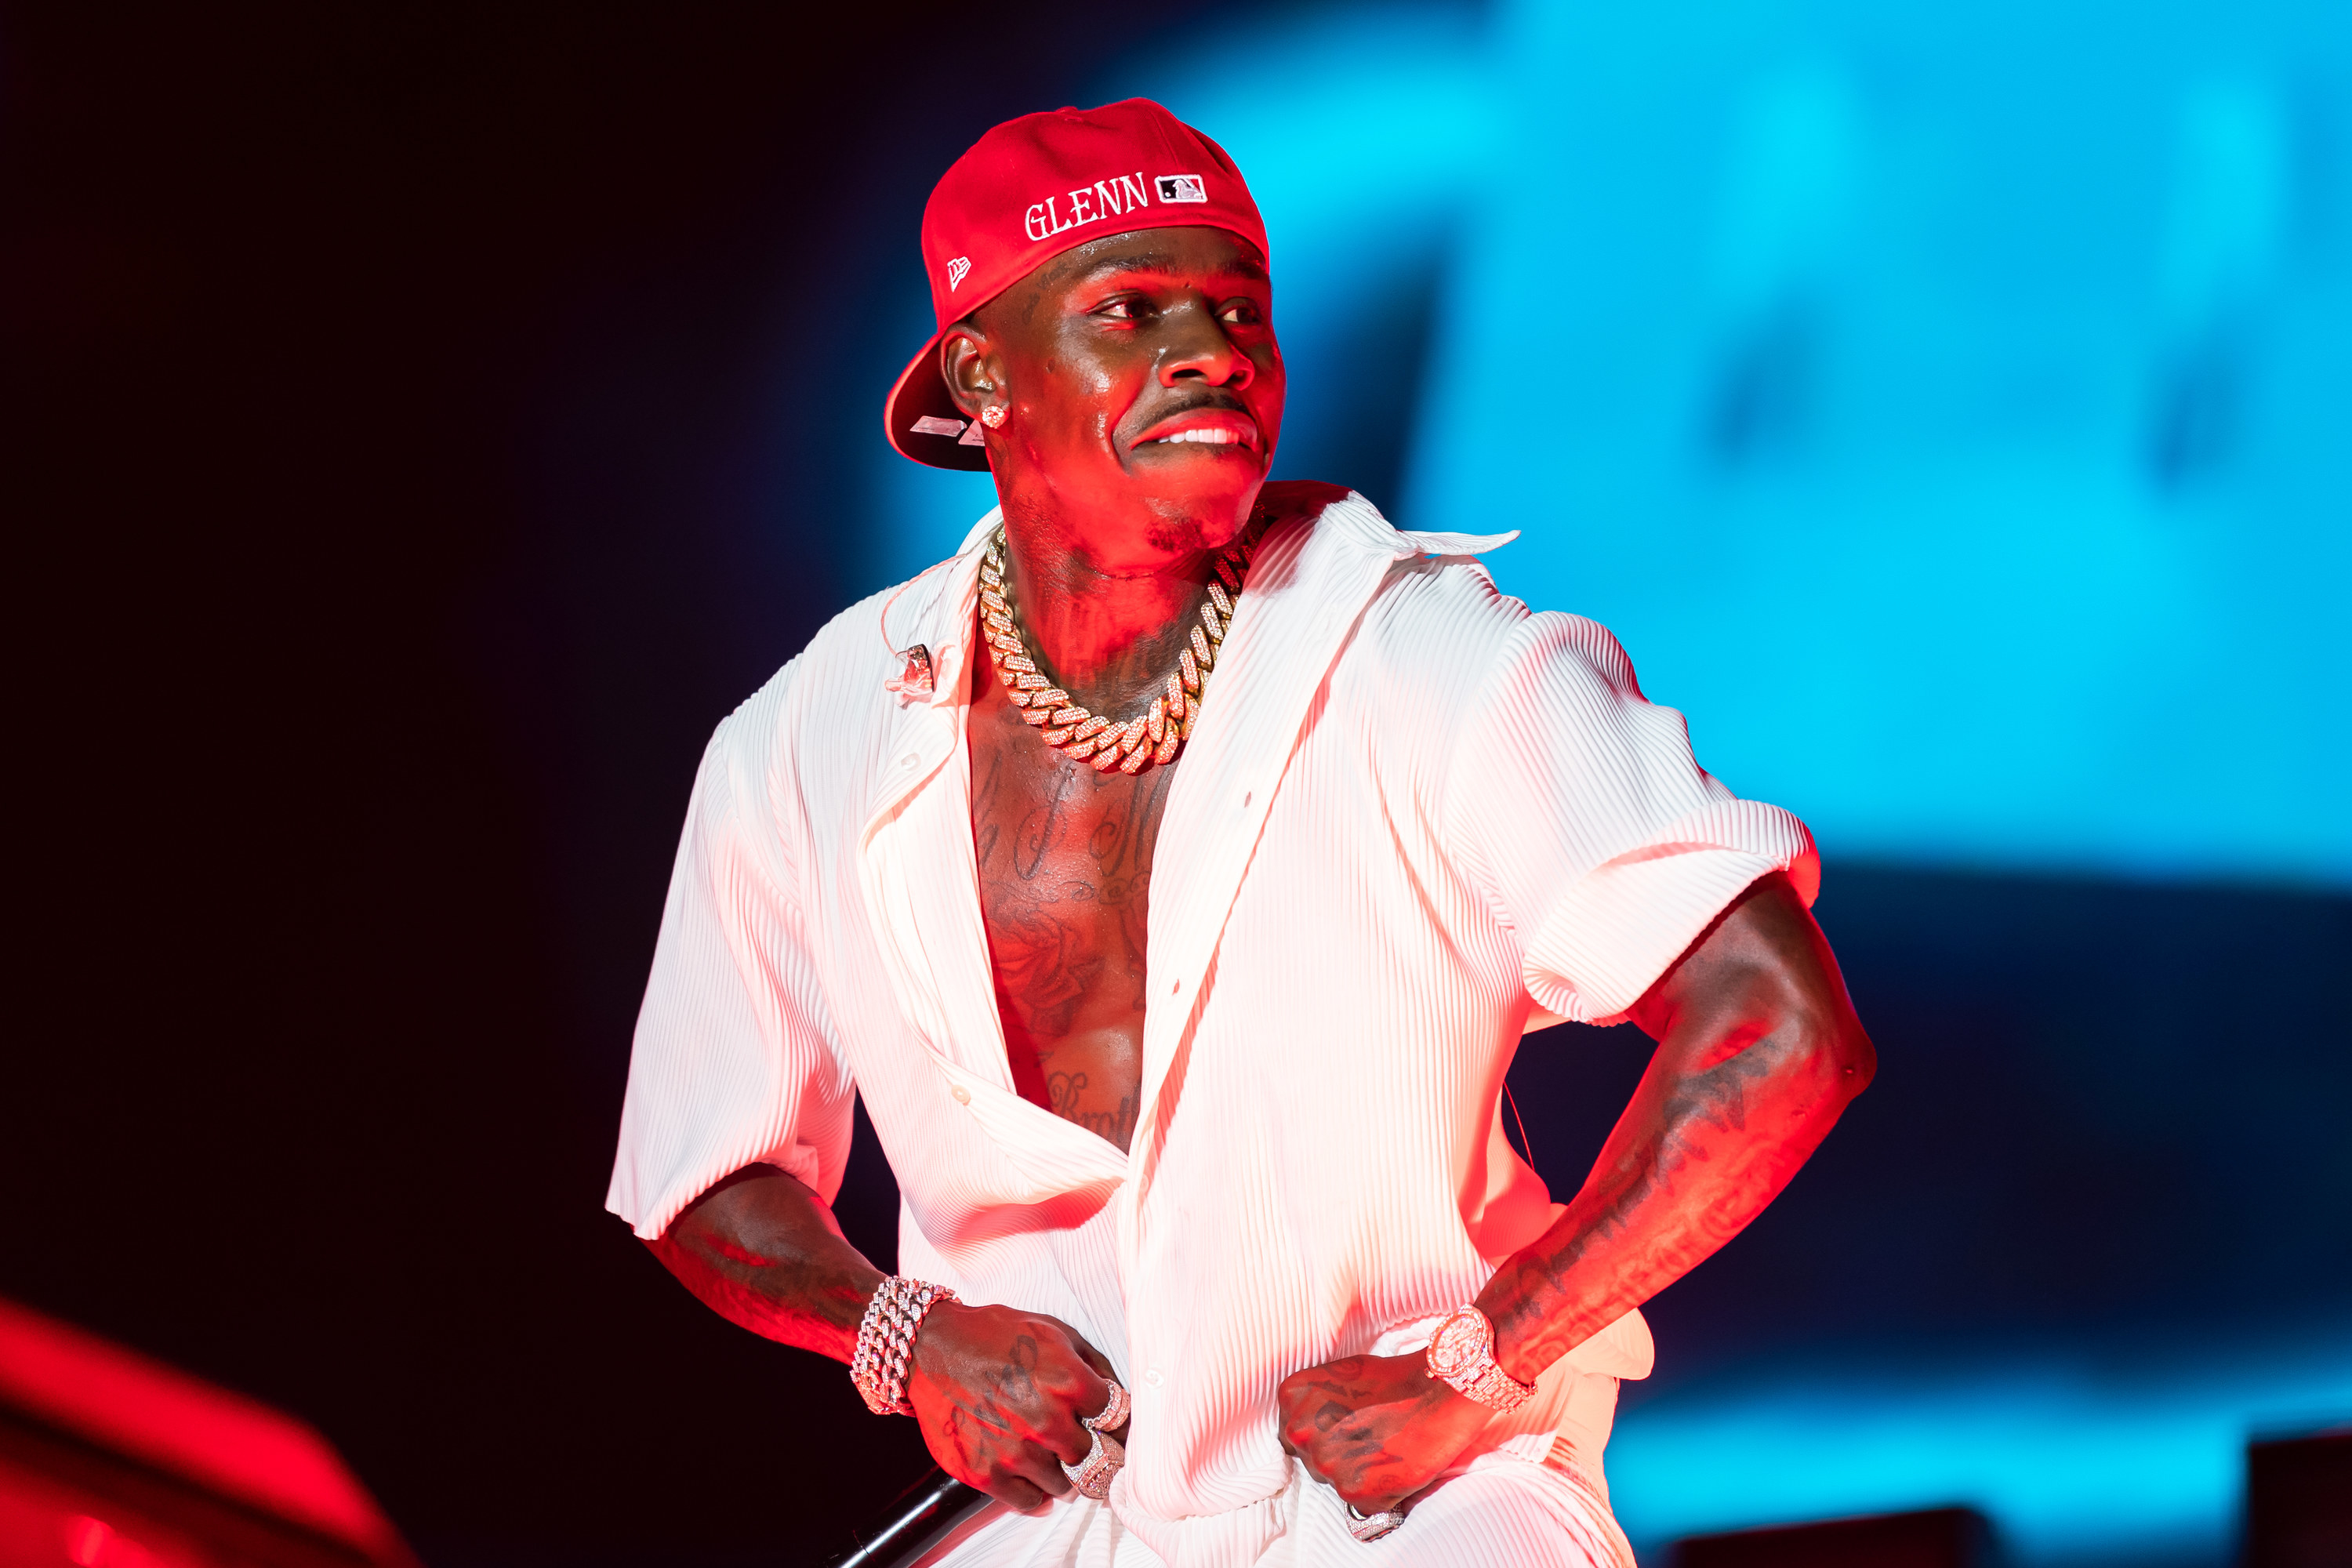 DaBaby performing on stage